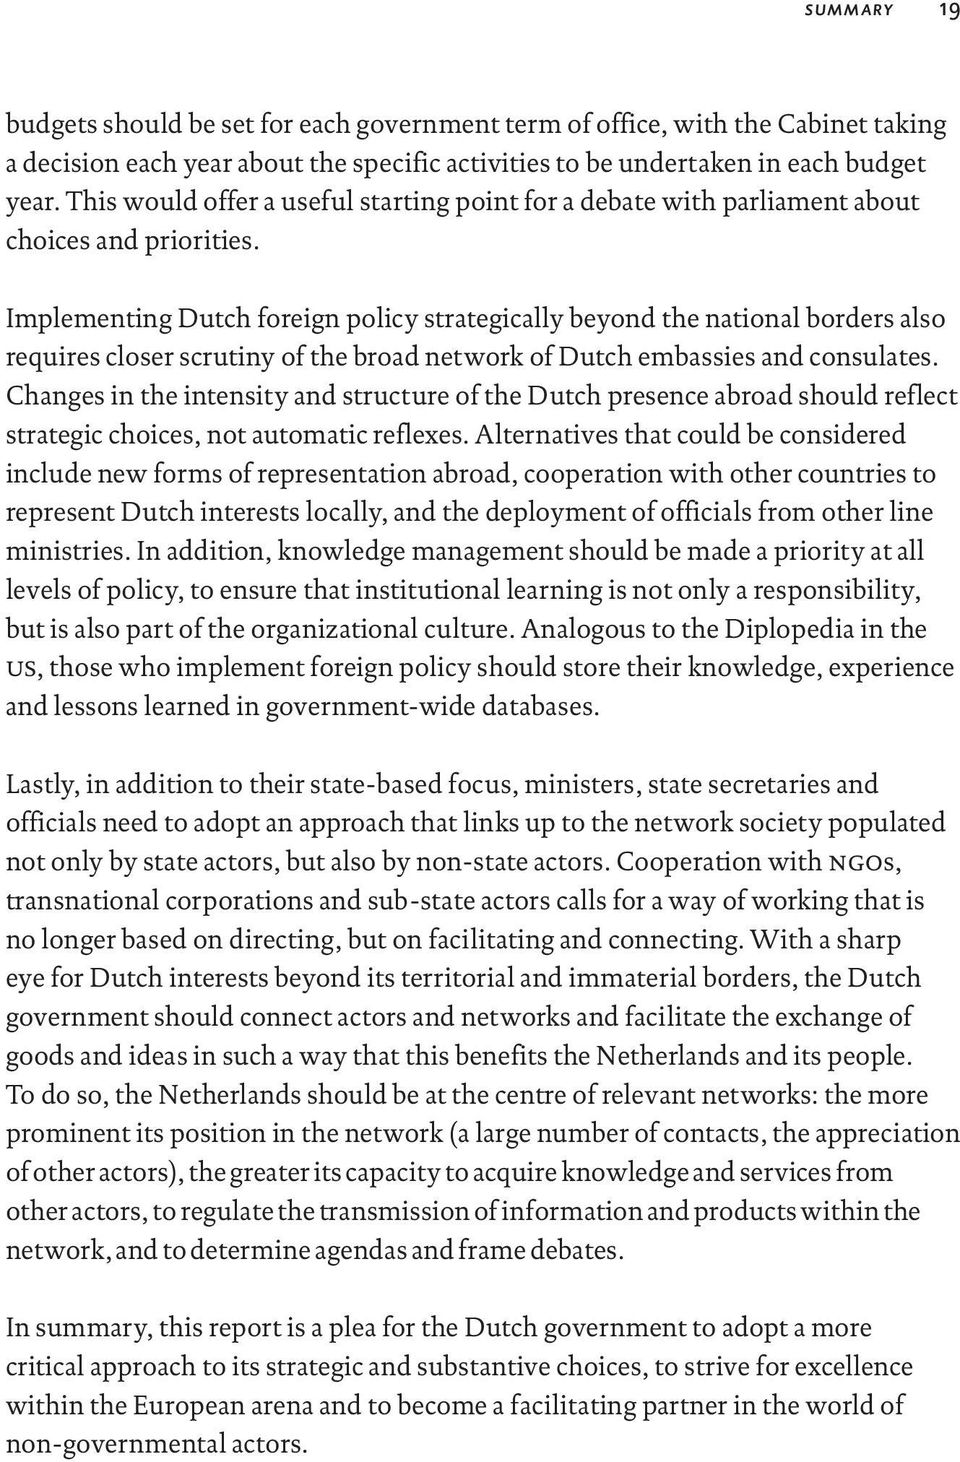 Implementing Dutch foreign policy strategically beyond the national borders also requires closer scrutiny of the broad network of Dutch embassies and consulates.